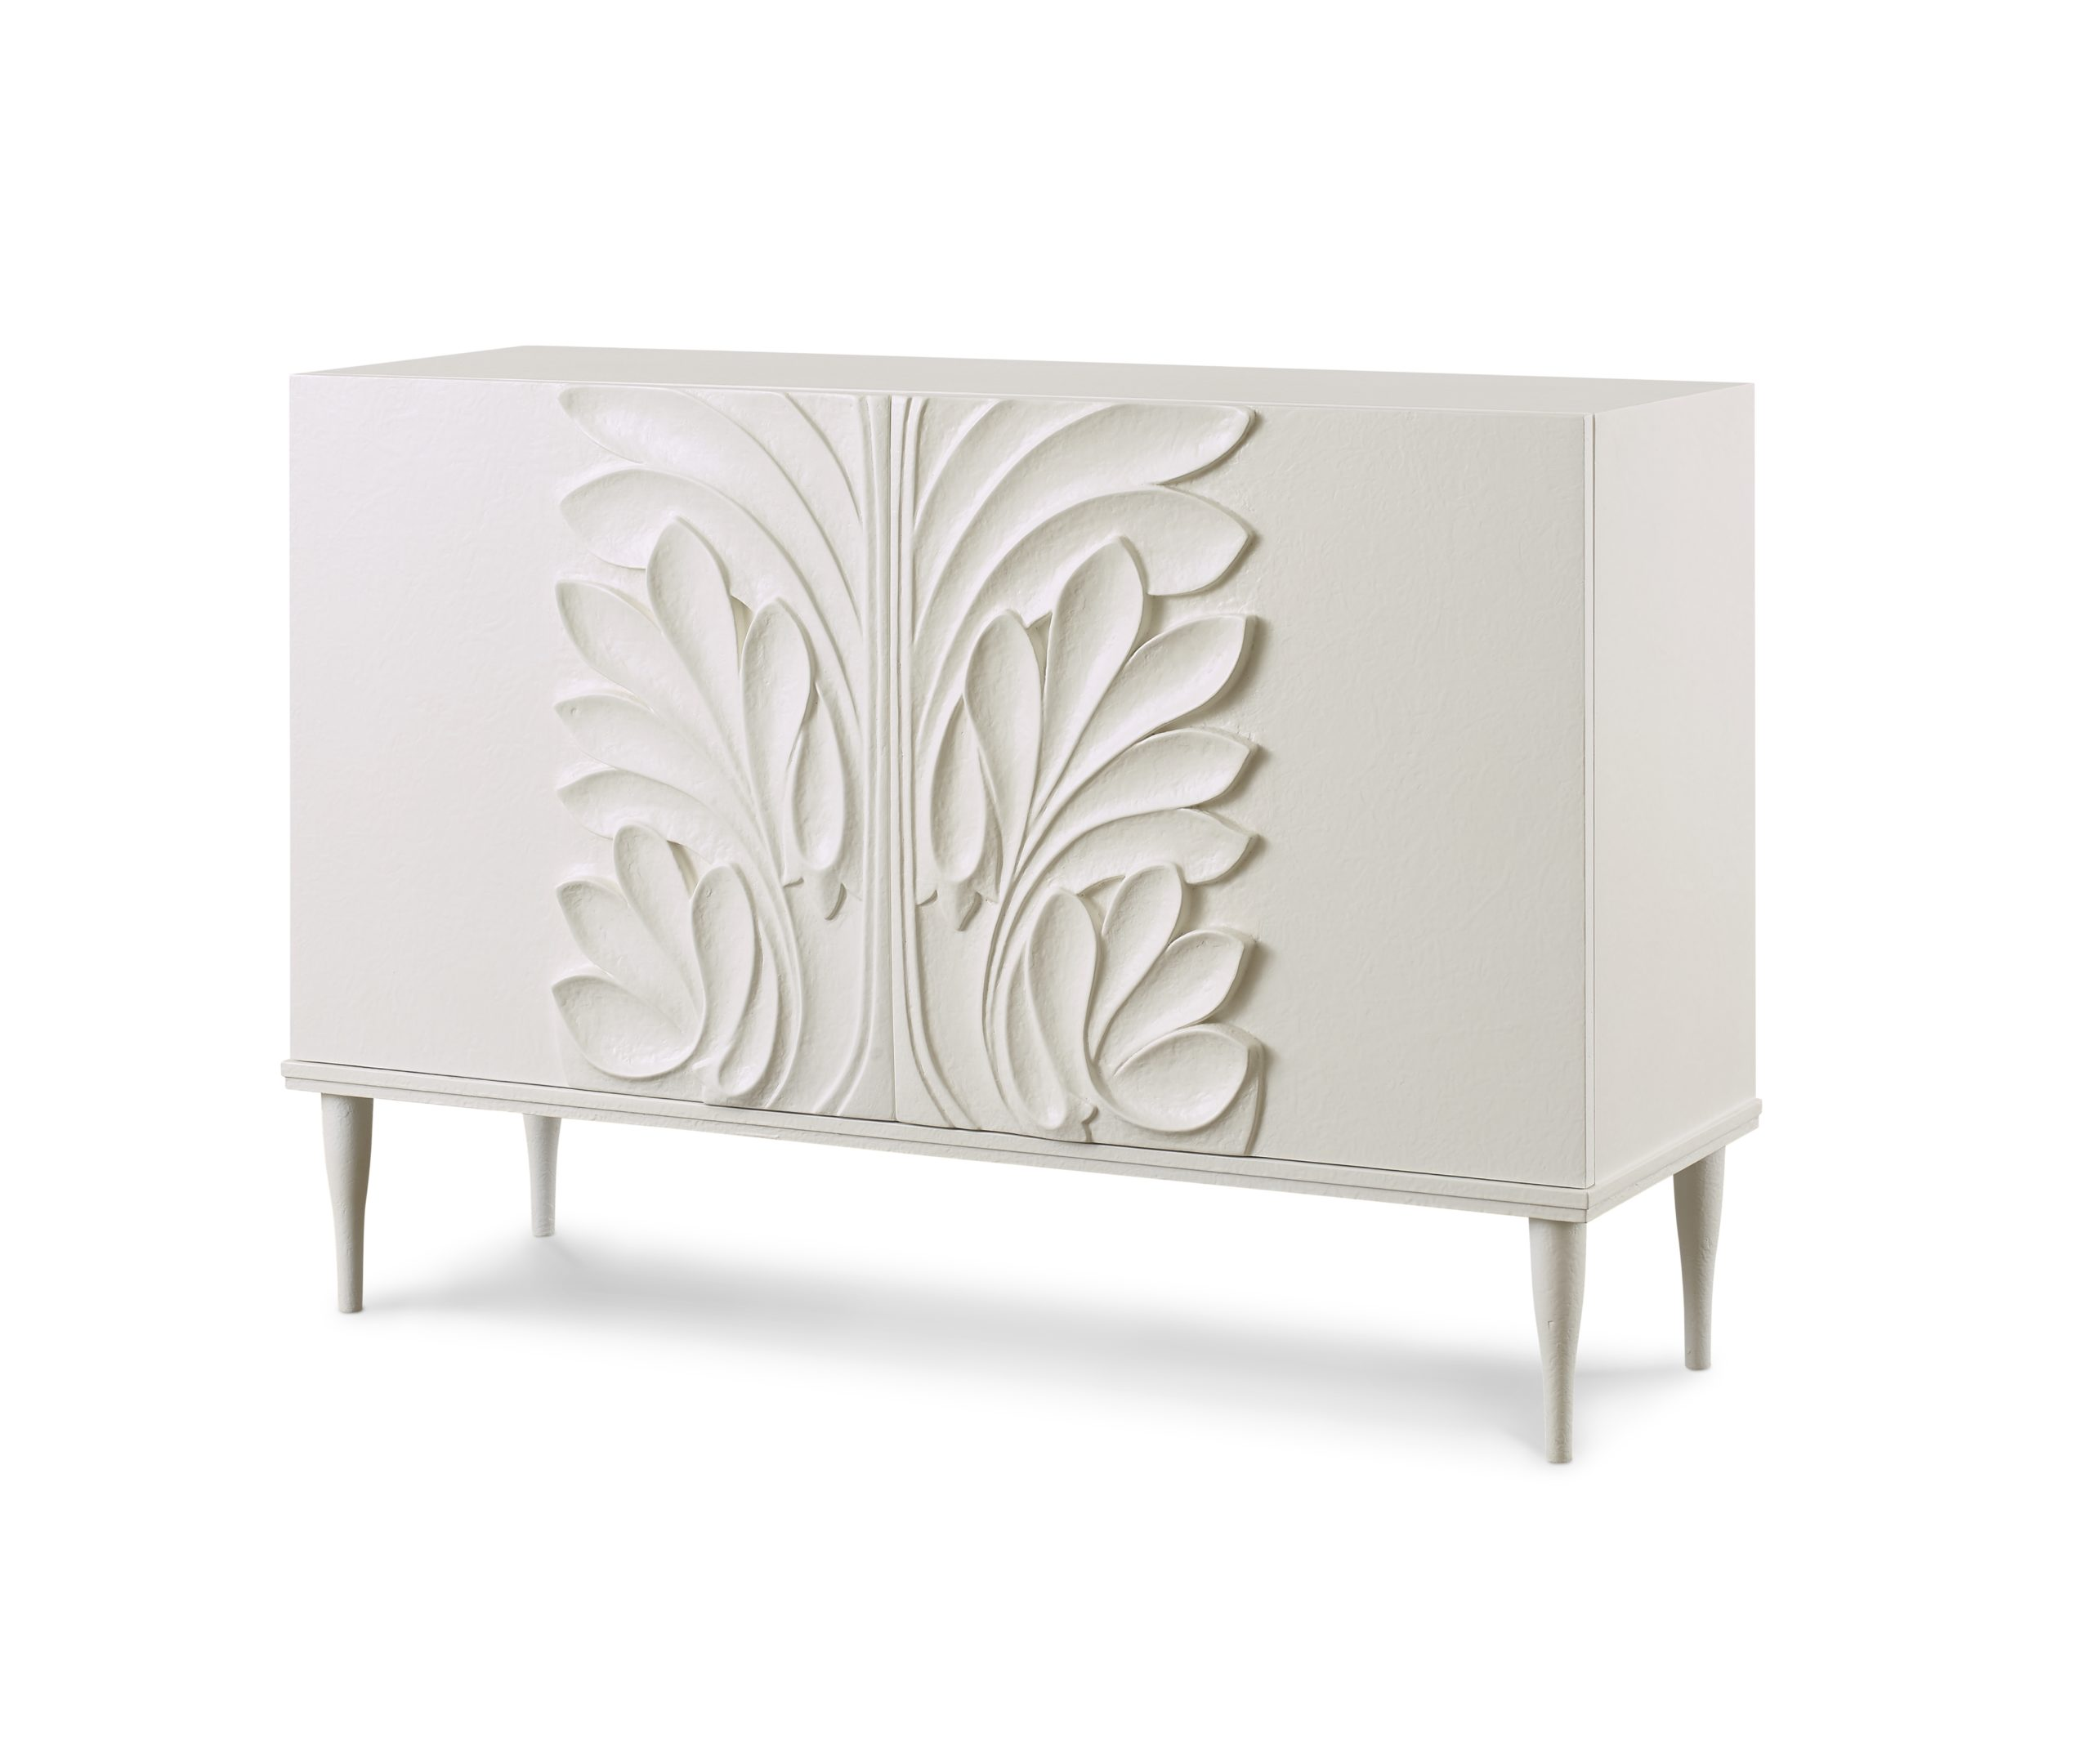 Baker_products_WNWN_jardin_chest_BAA3229_FRONT_3QRT-scaled-2